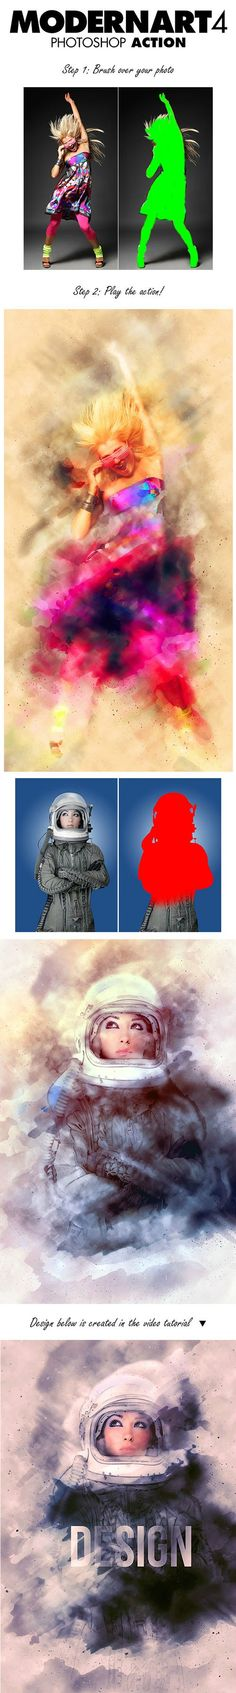 Graphicriver - ModernArt 4 Photoshop Action 11317965